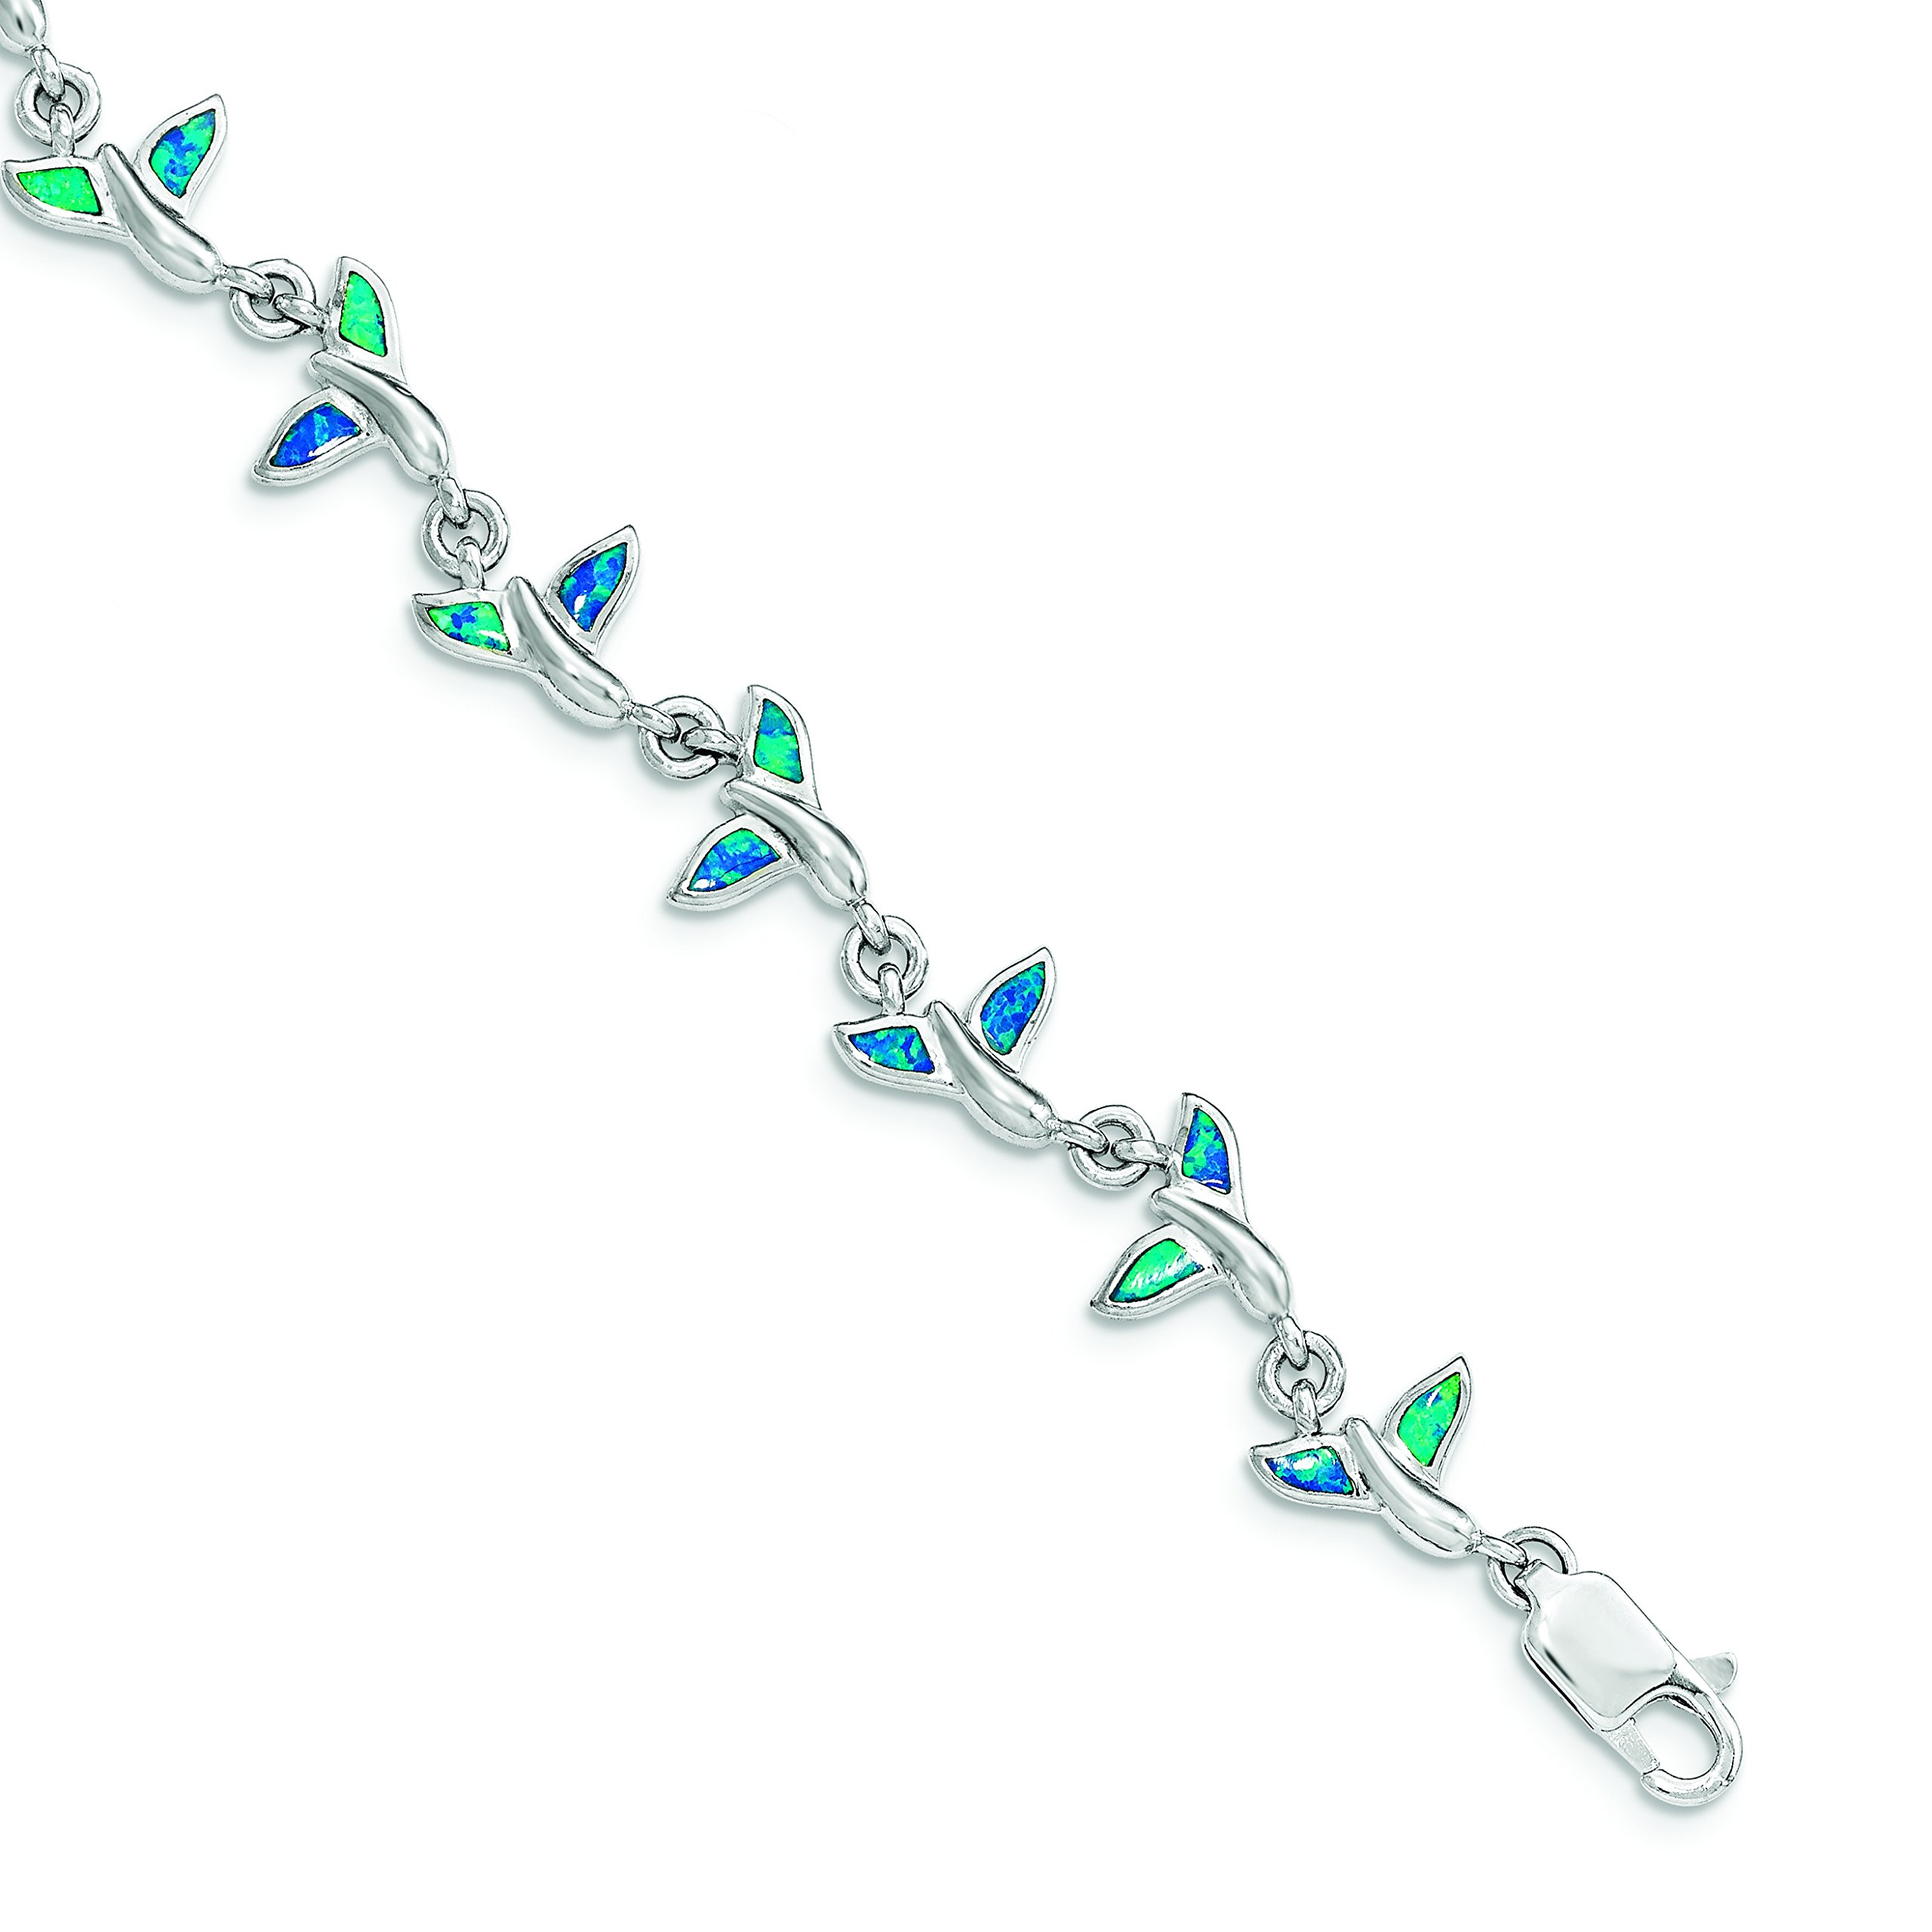 ICE CARATS 925 Sterling Silver Whale Tail 7.75in Bracelet 7.75 Inch Animal Fine Jewelry Gift For Women Heart